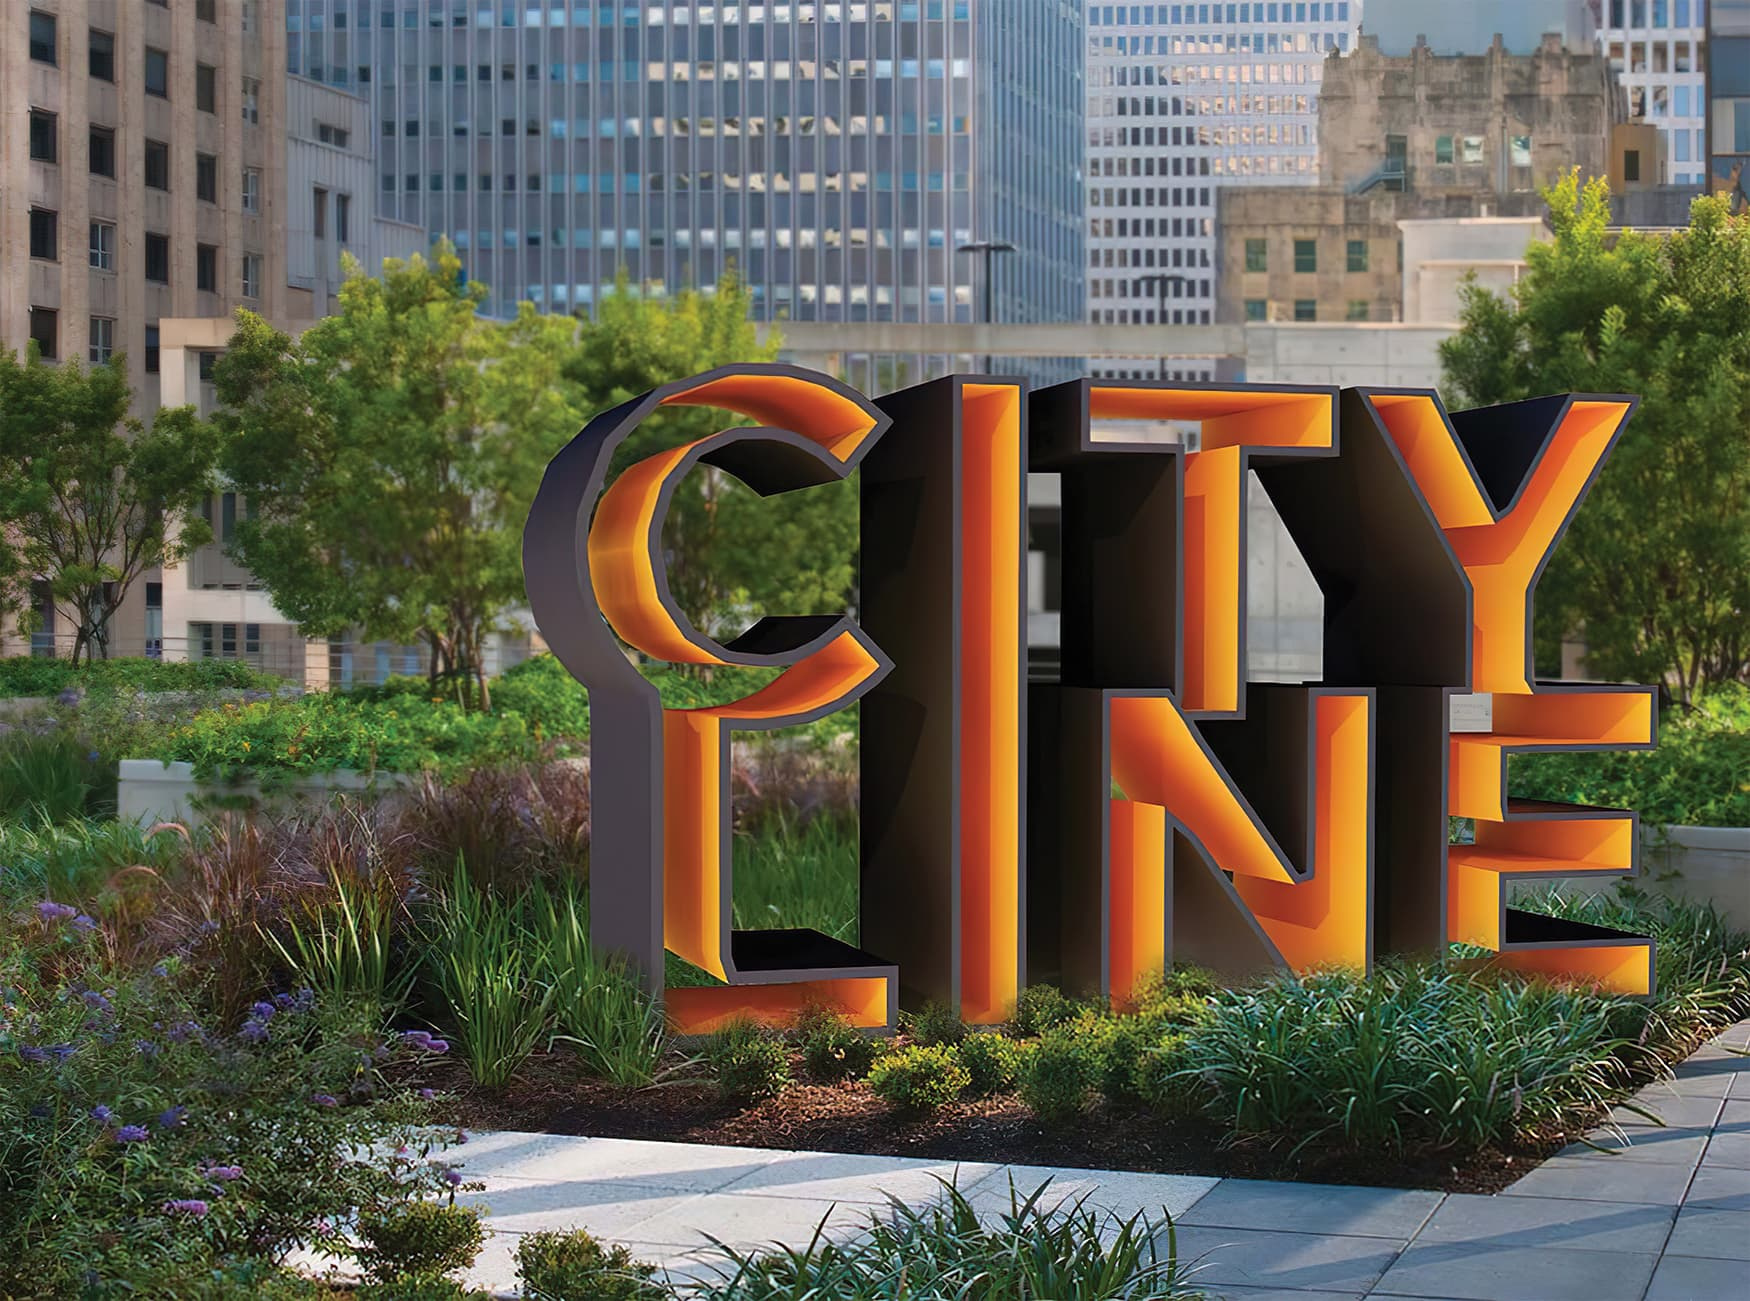 CityLine a mixed-use development in Dallas, Texas. Identity and wayfinding design. Monument Signage. Park Signage.